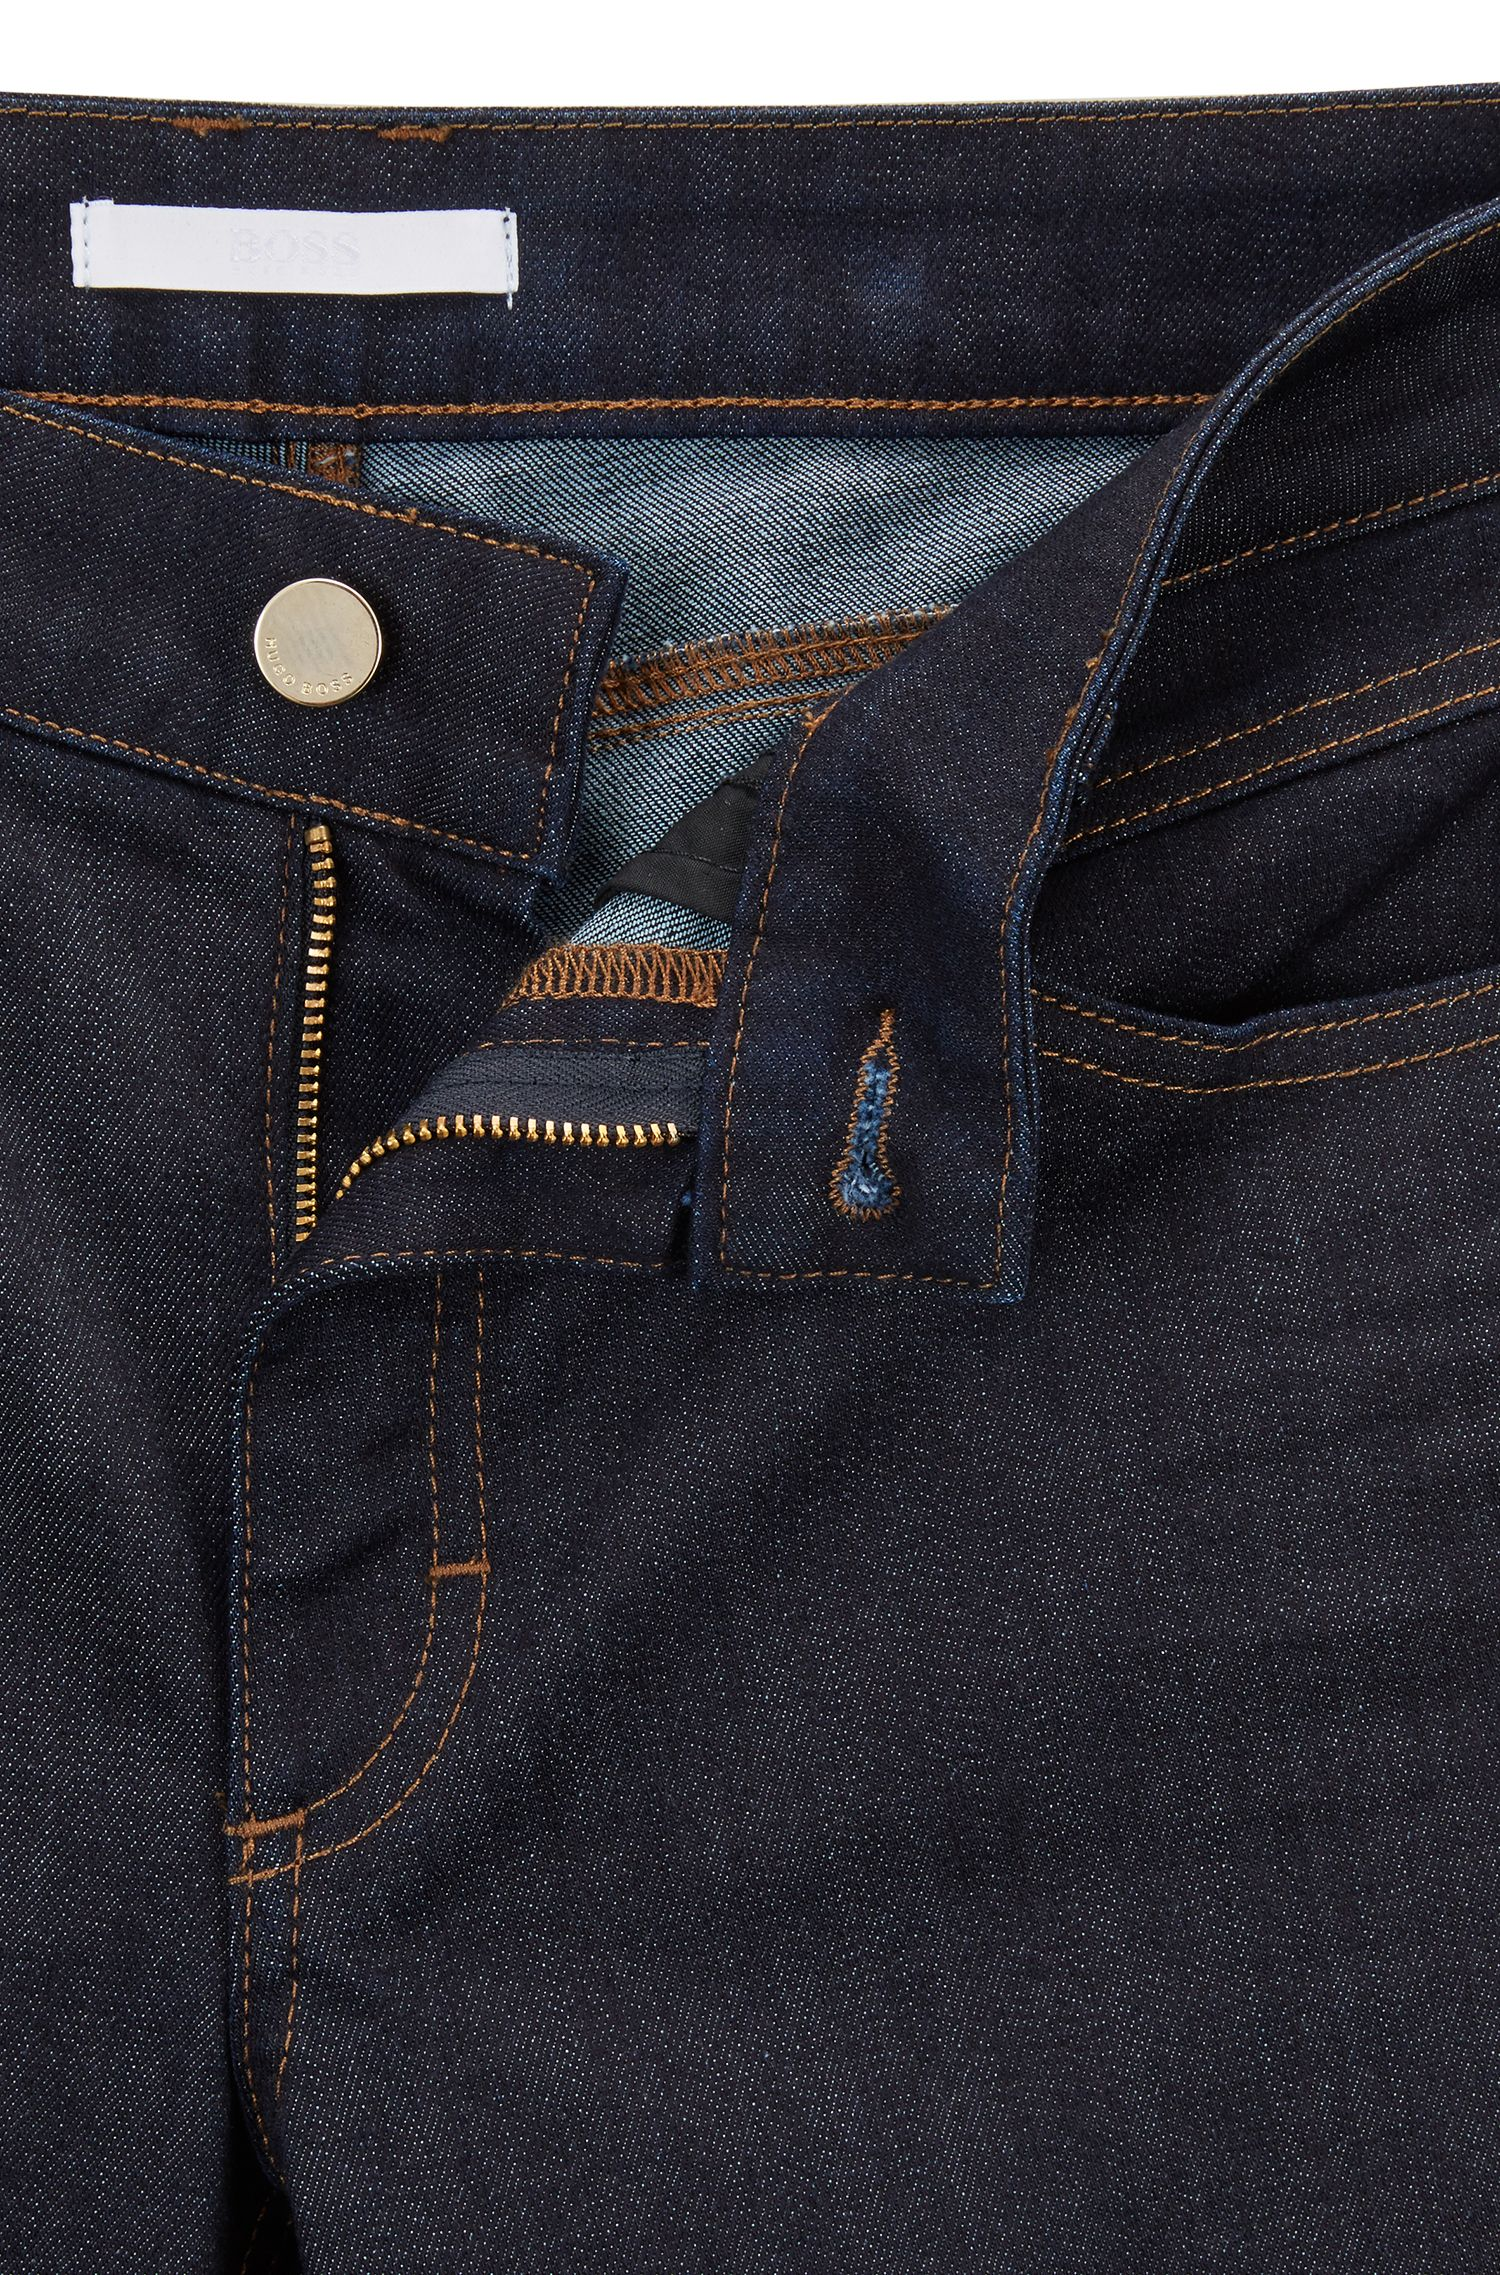 Regular-Fit Jeans aus elastischem Baumwoll-Mix: 'Nelin'